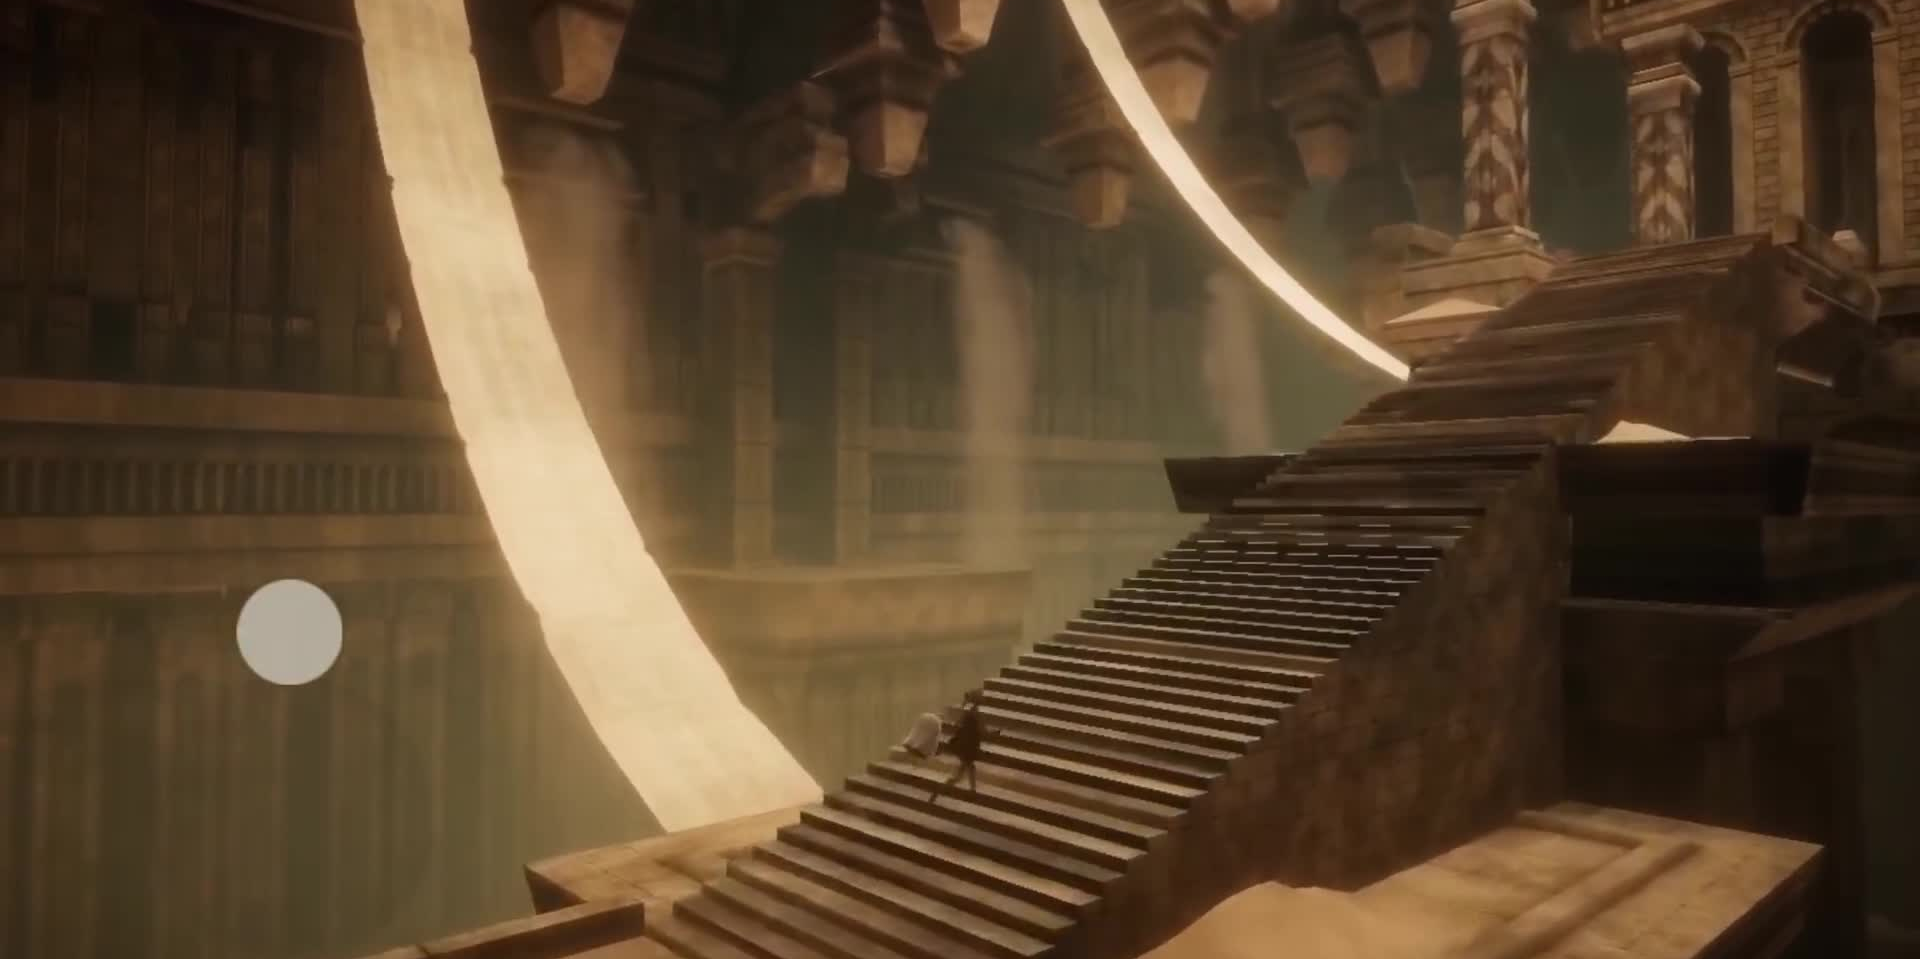 NieR Reincarnation se montre timidement dans son premier teaser de gameplay